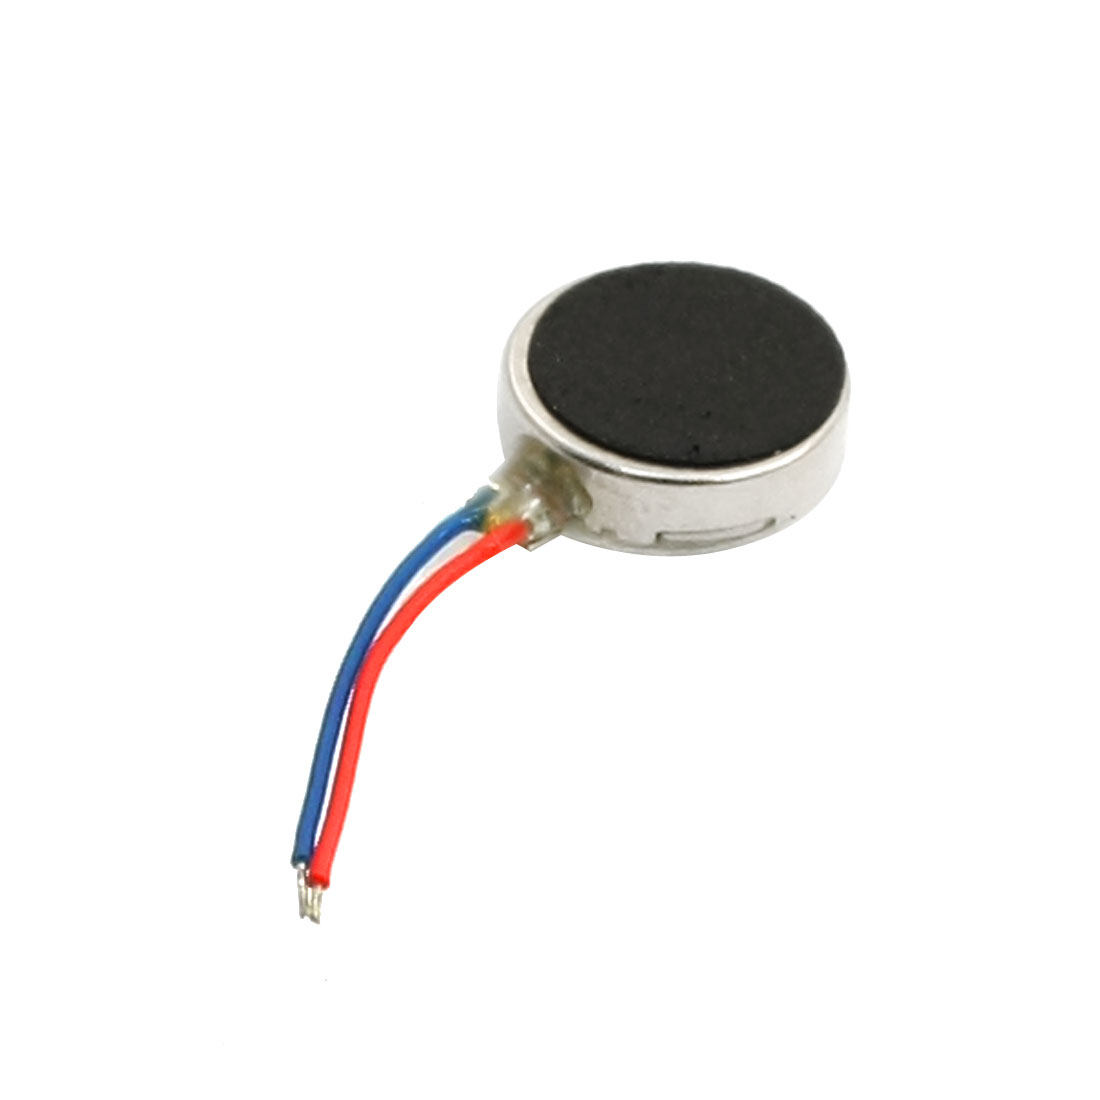 10mm x 3mm Cellphone Vibration DC Micro Mini Motor 3V 11000RPM